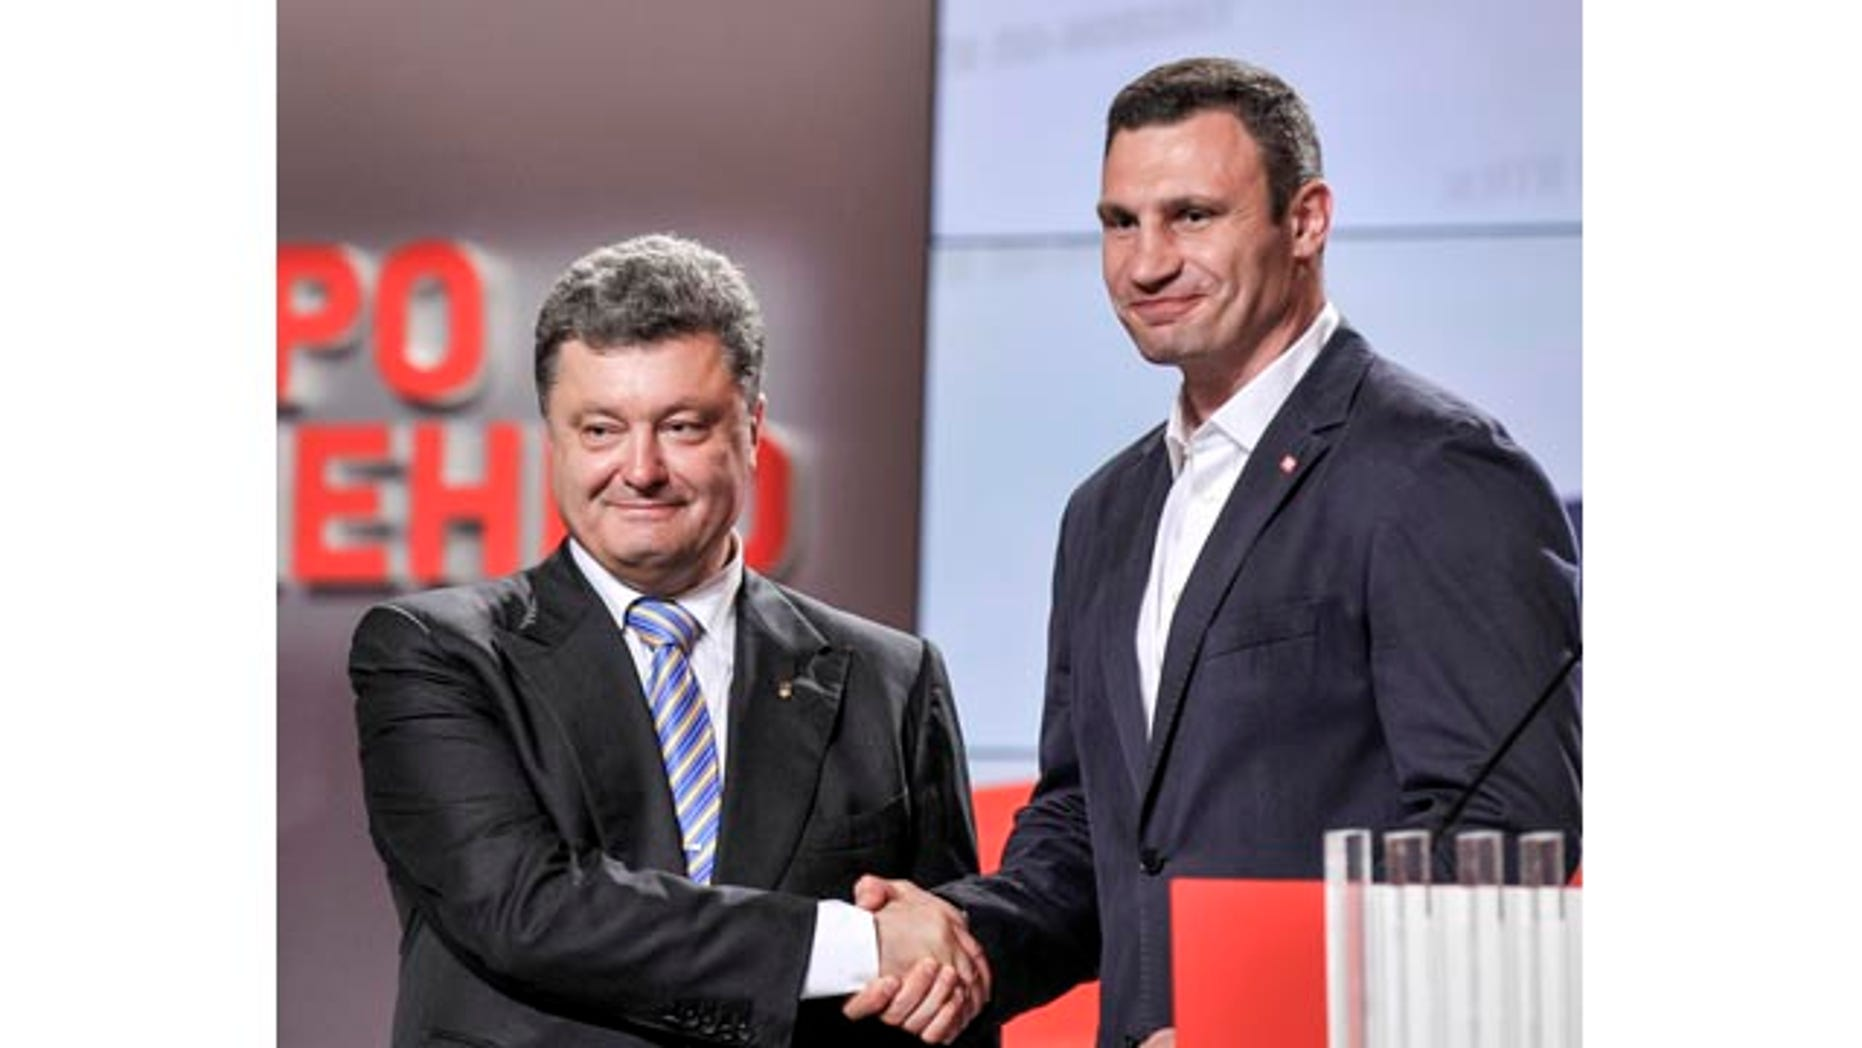 May 25, 2014: Ukrainian presidential candidate Petro Poroshenko, left, shake hands with Kiev mayoral candidate Vitali Klitschko during their press conference in Kiev. (AP Photo/Mykola Lazarenko, Pool)